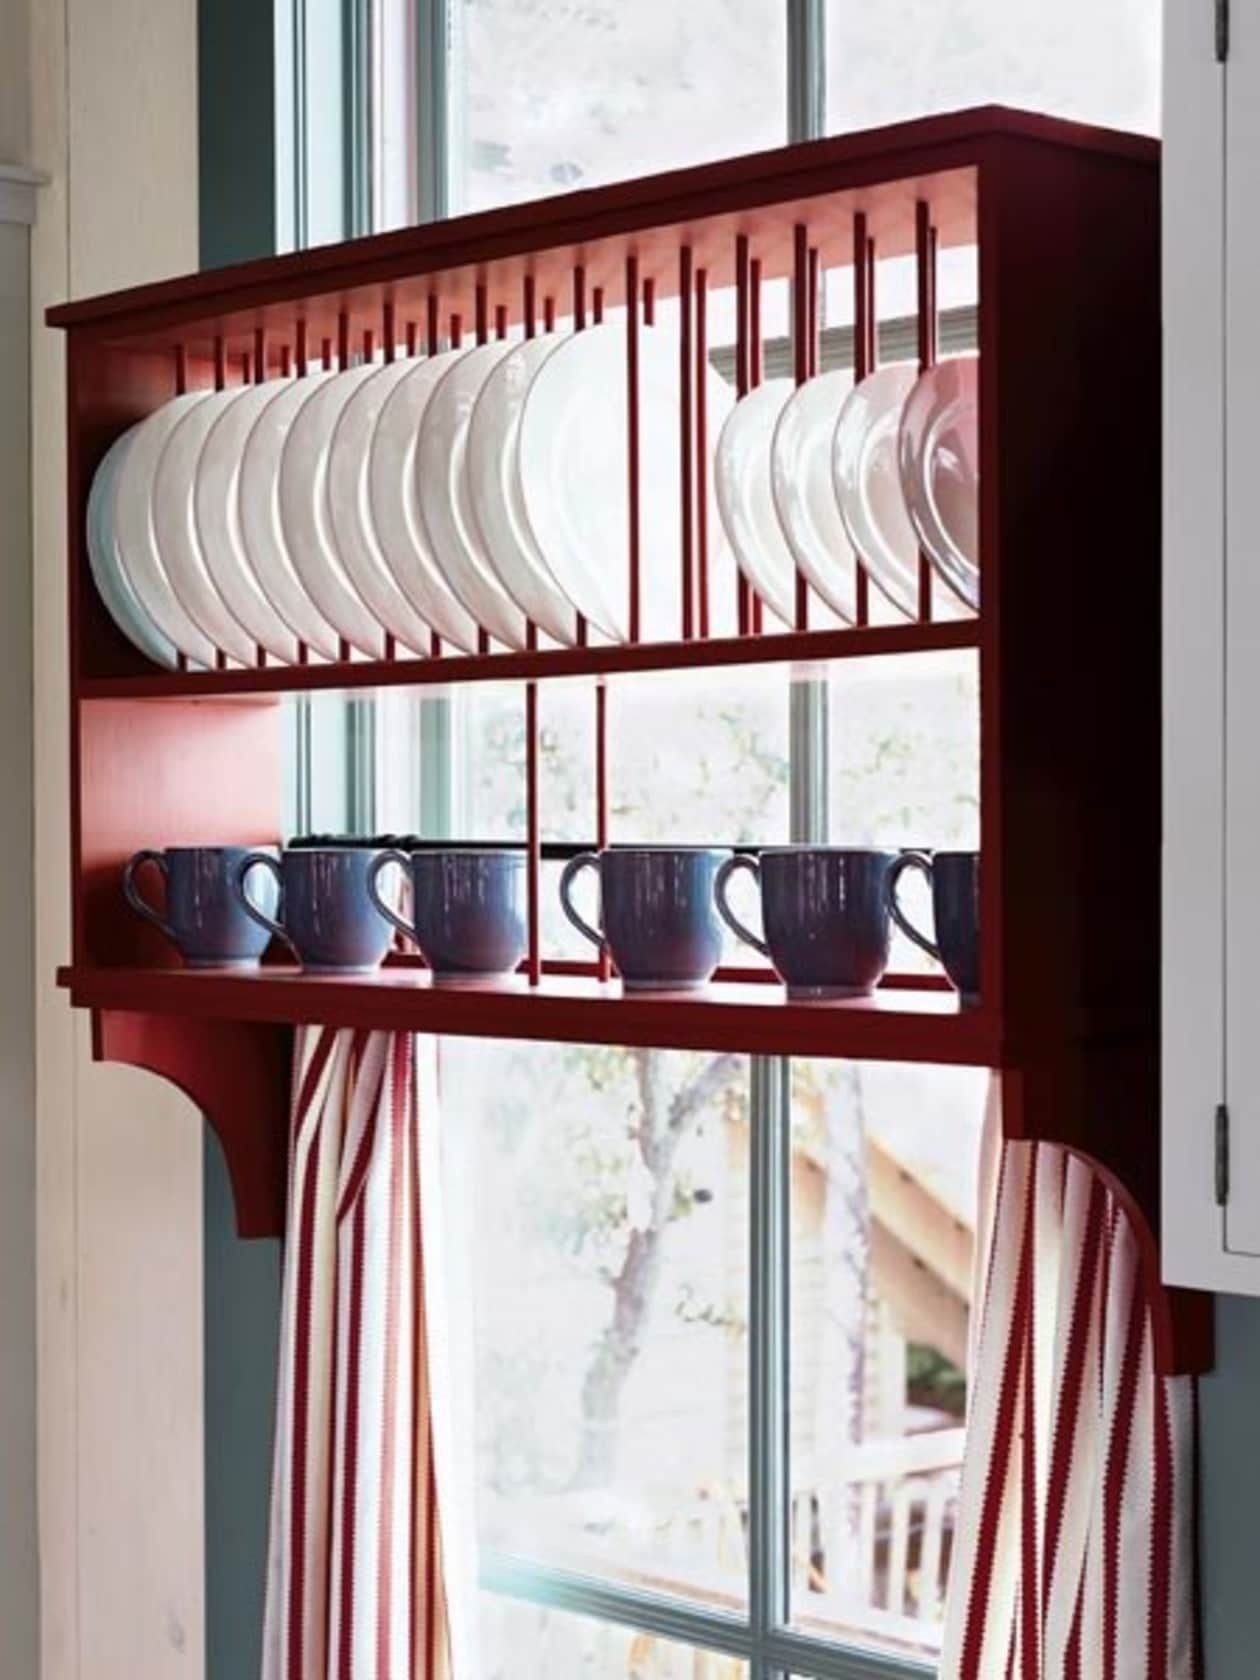 Look! Plate Rack Storage Over the Window #plateracks